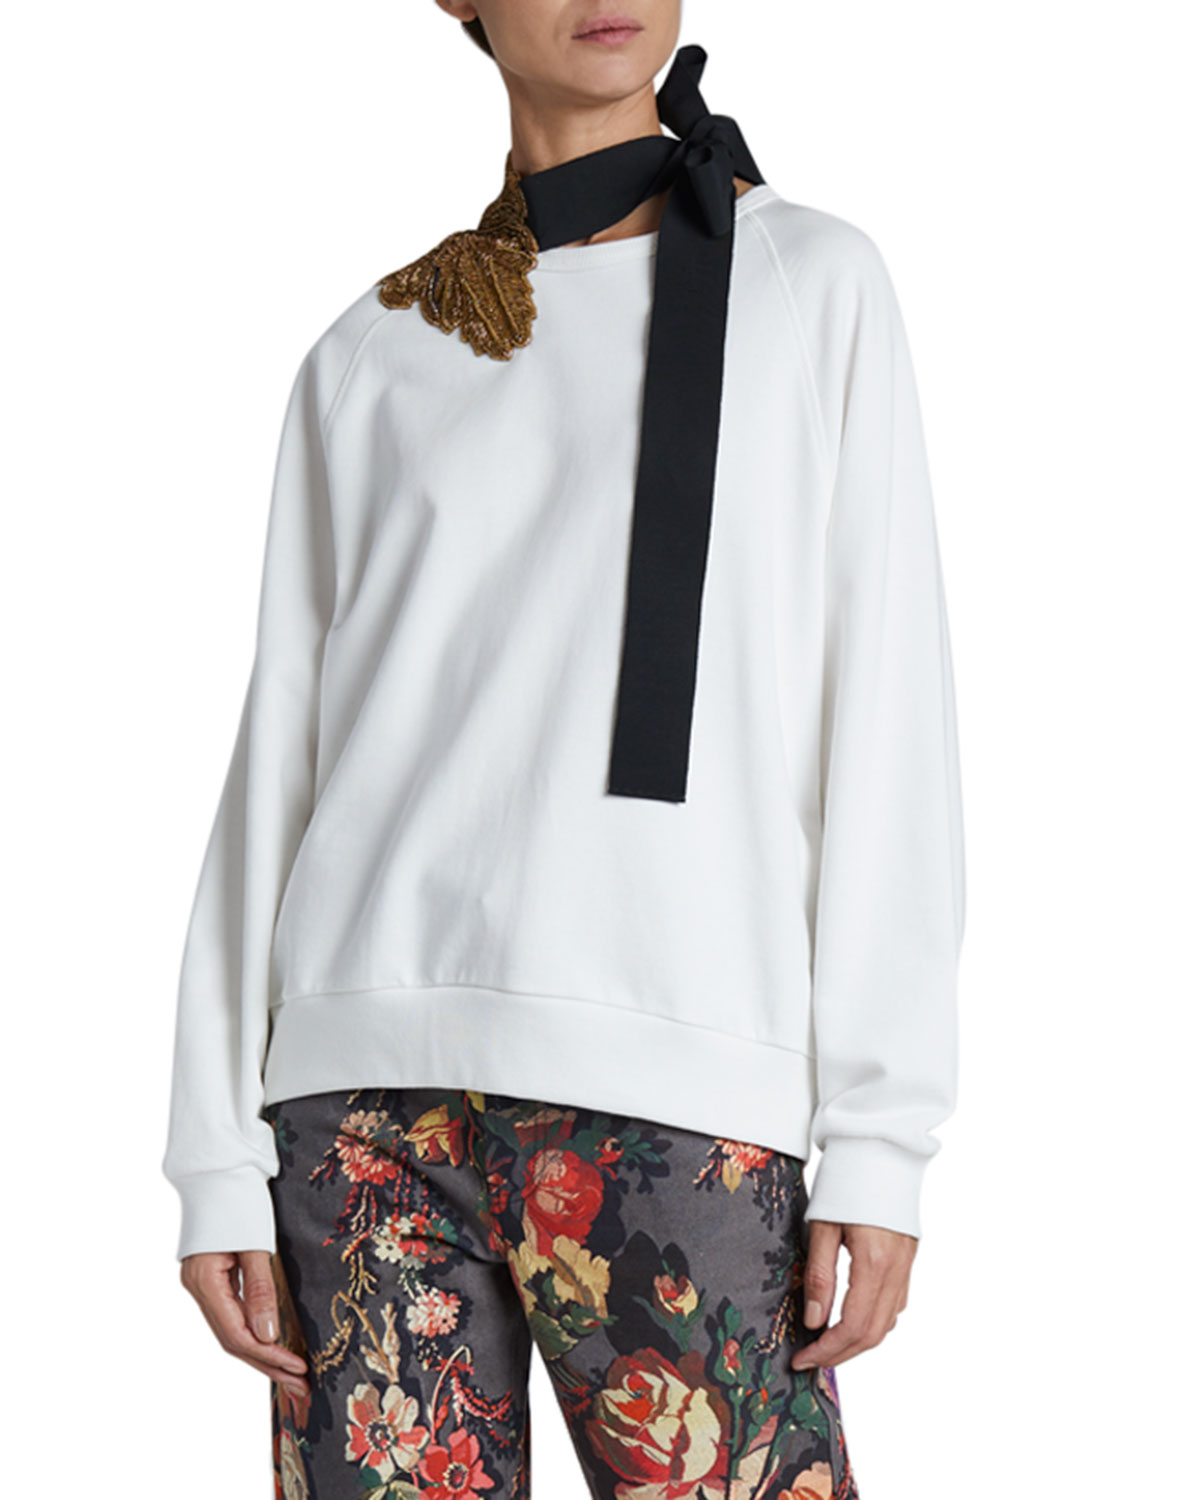 Dries Van Noten Hebiso Metallic Embroidered Tie-Neck Sweater